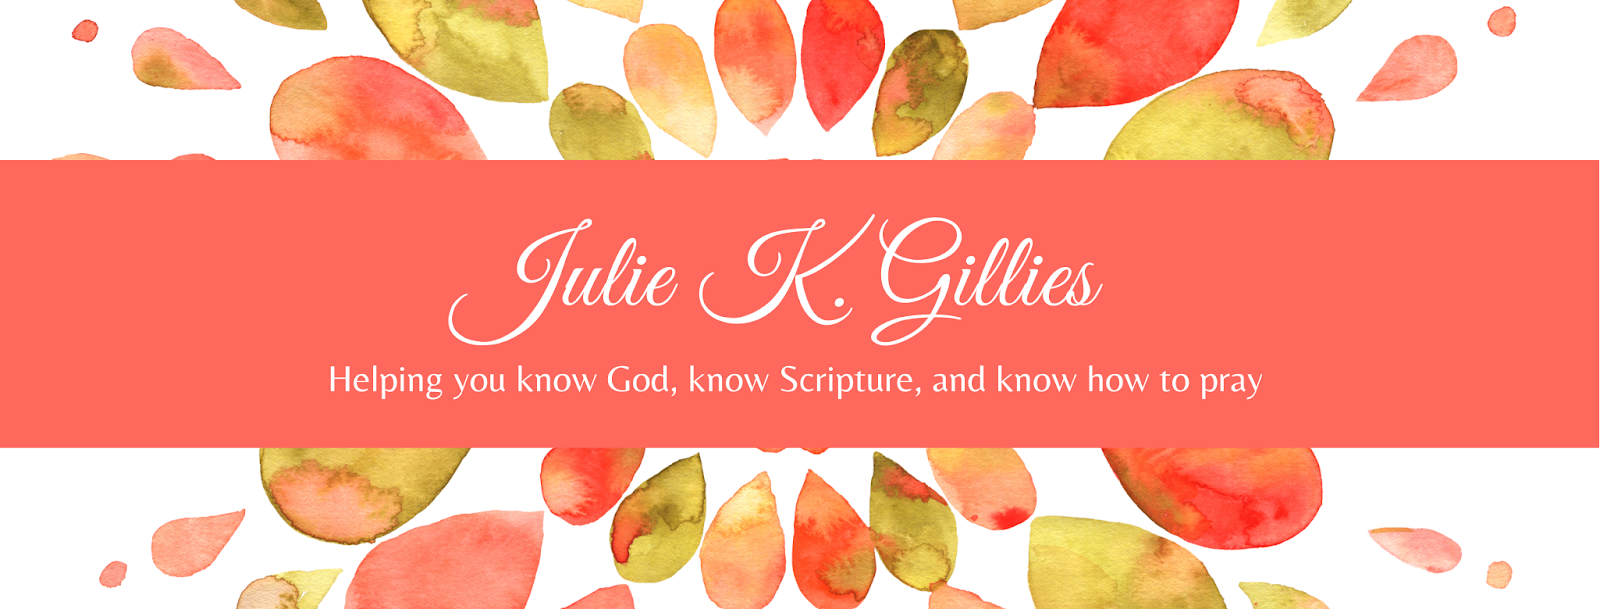 Julie Gillies - Helping You Know God, Know Scripture, and Know How to Pray